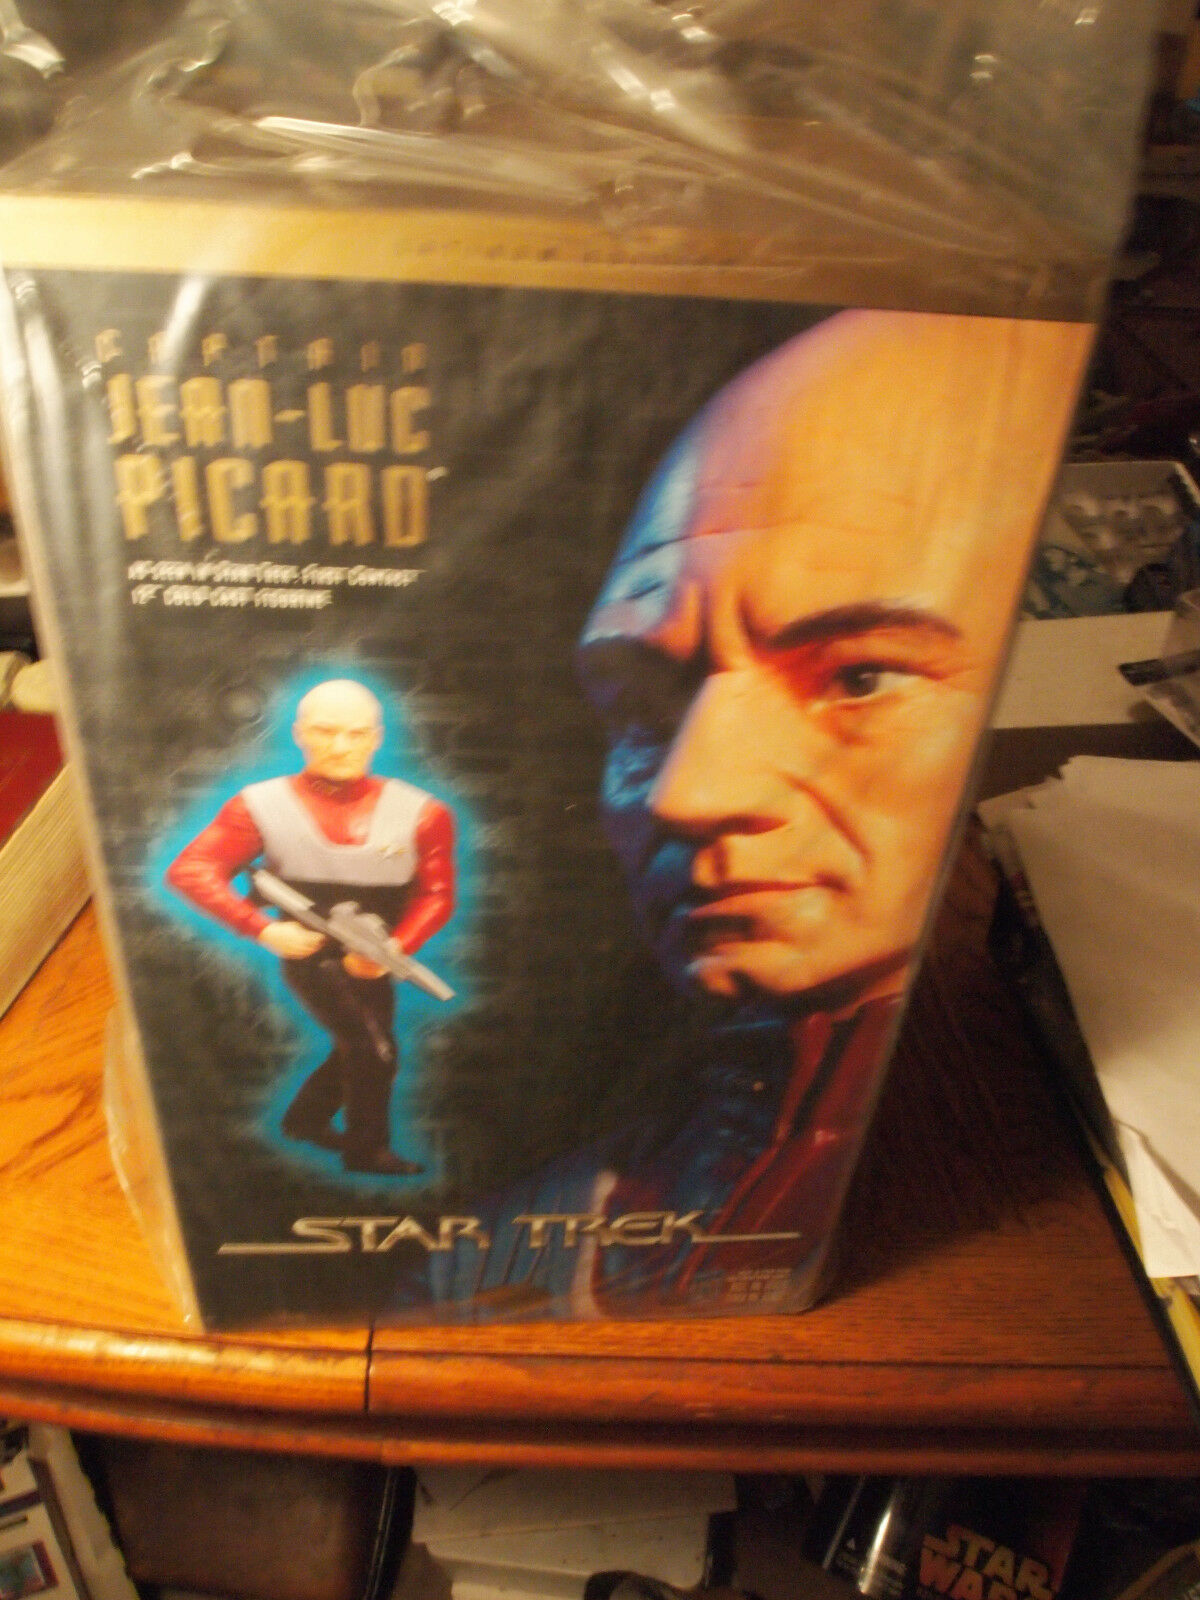 Playmates 1997 Star Trek Latinum Edition Captain Jean Luc Picard, mint in box